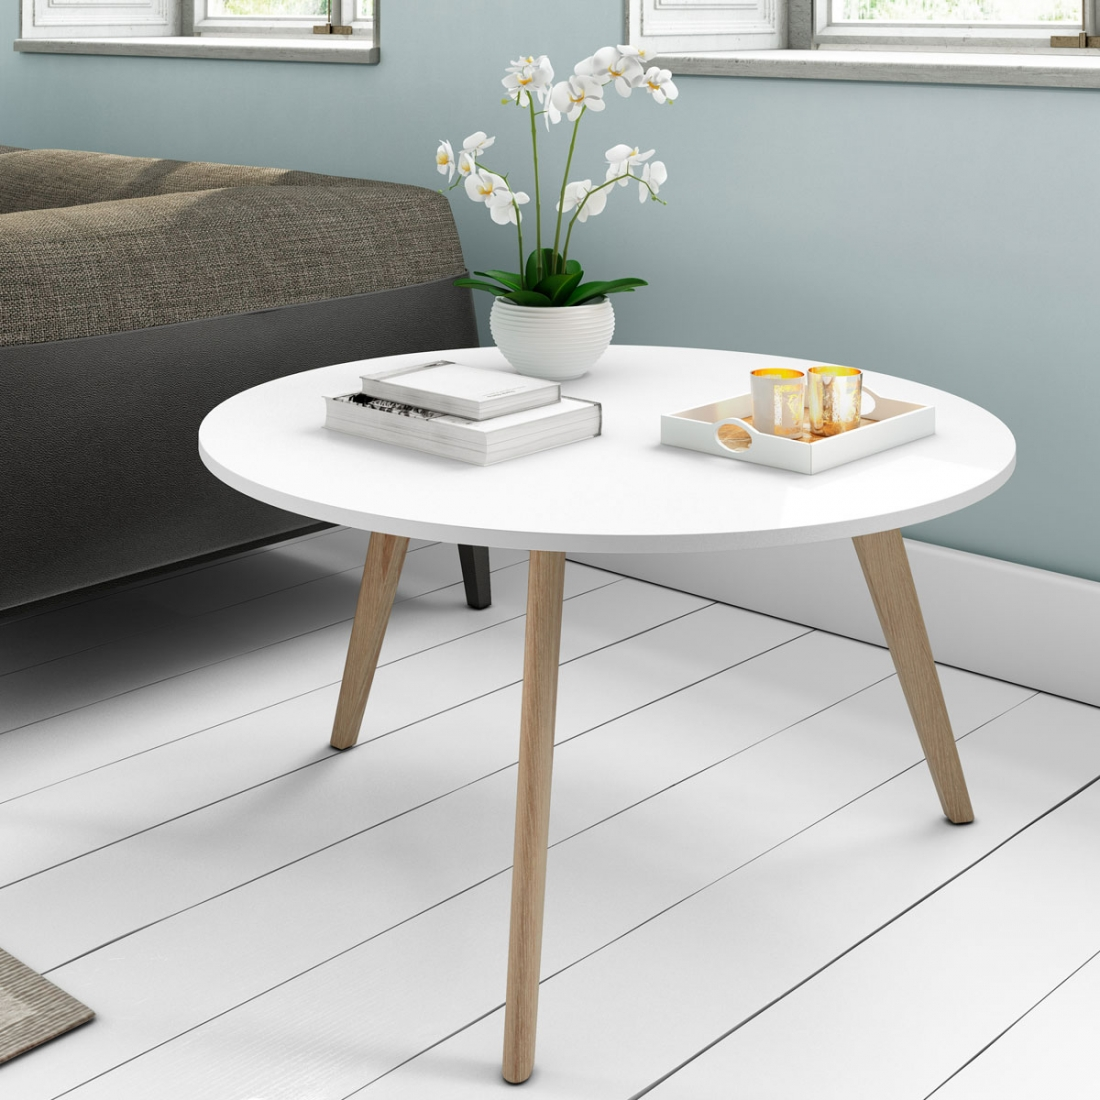 Guide d co r ussir son salon design blanc blog zendart design - Table basse salon design ...